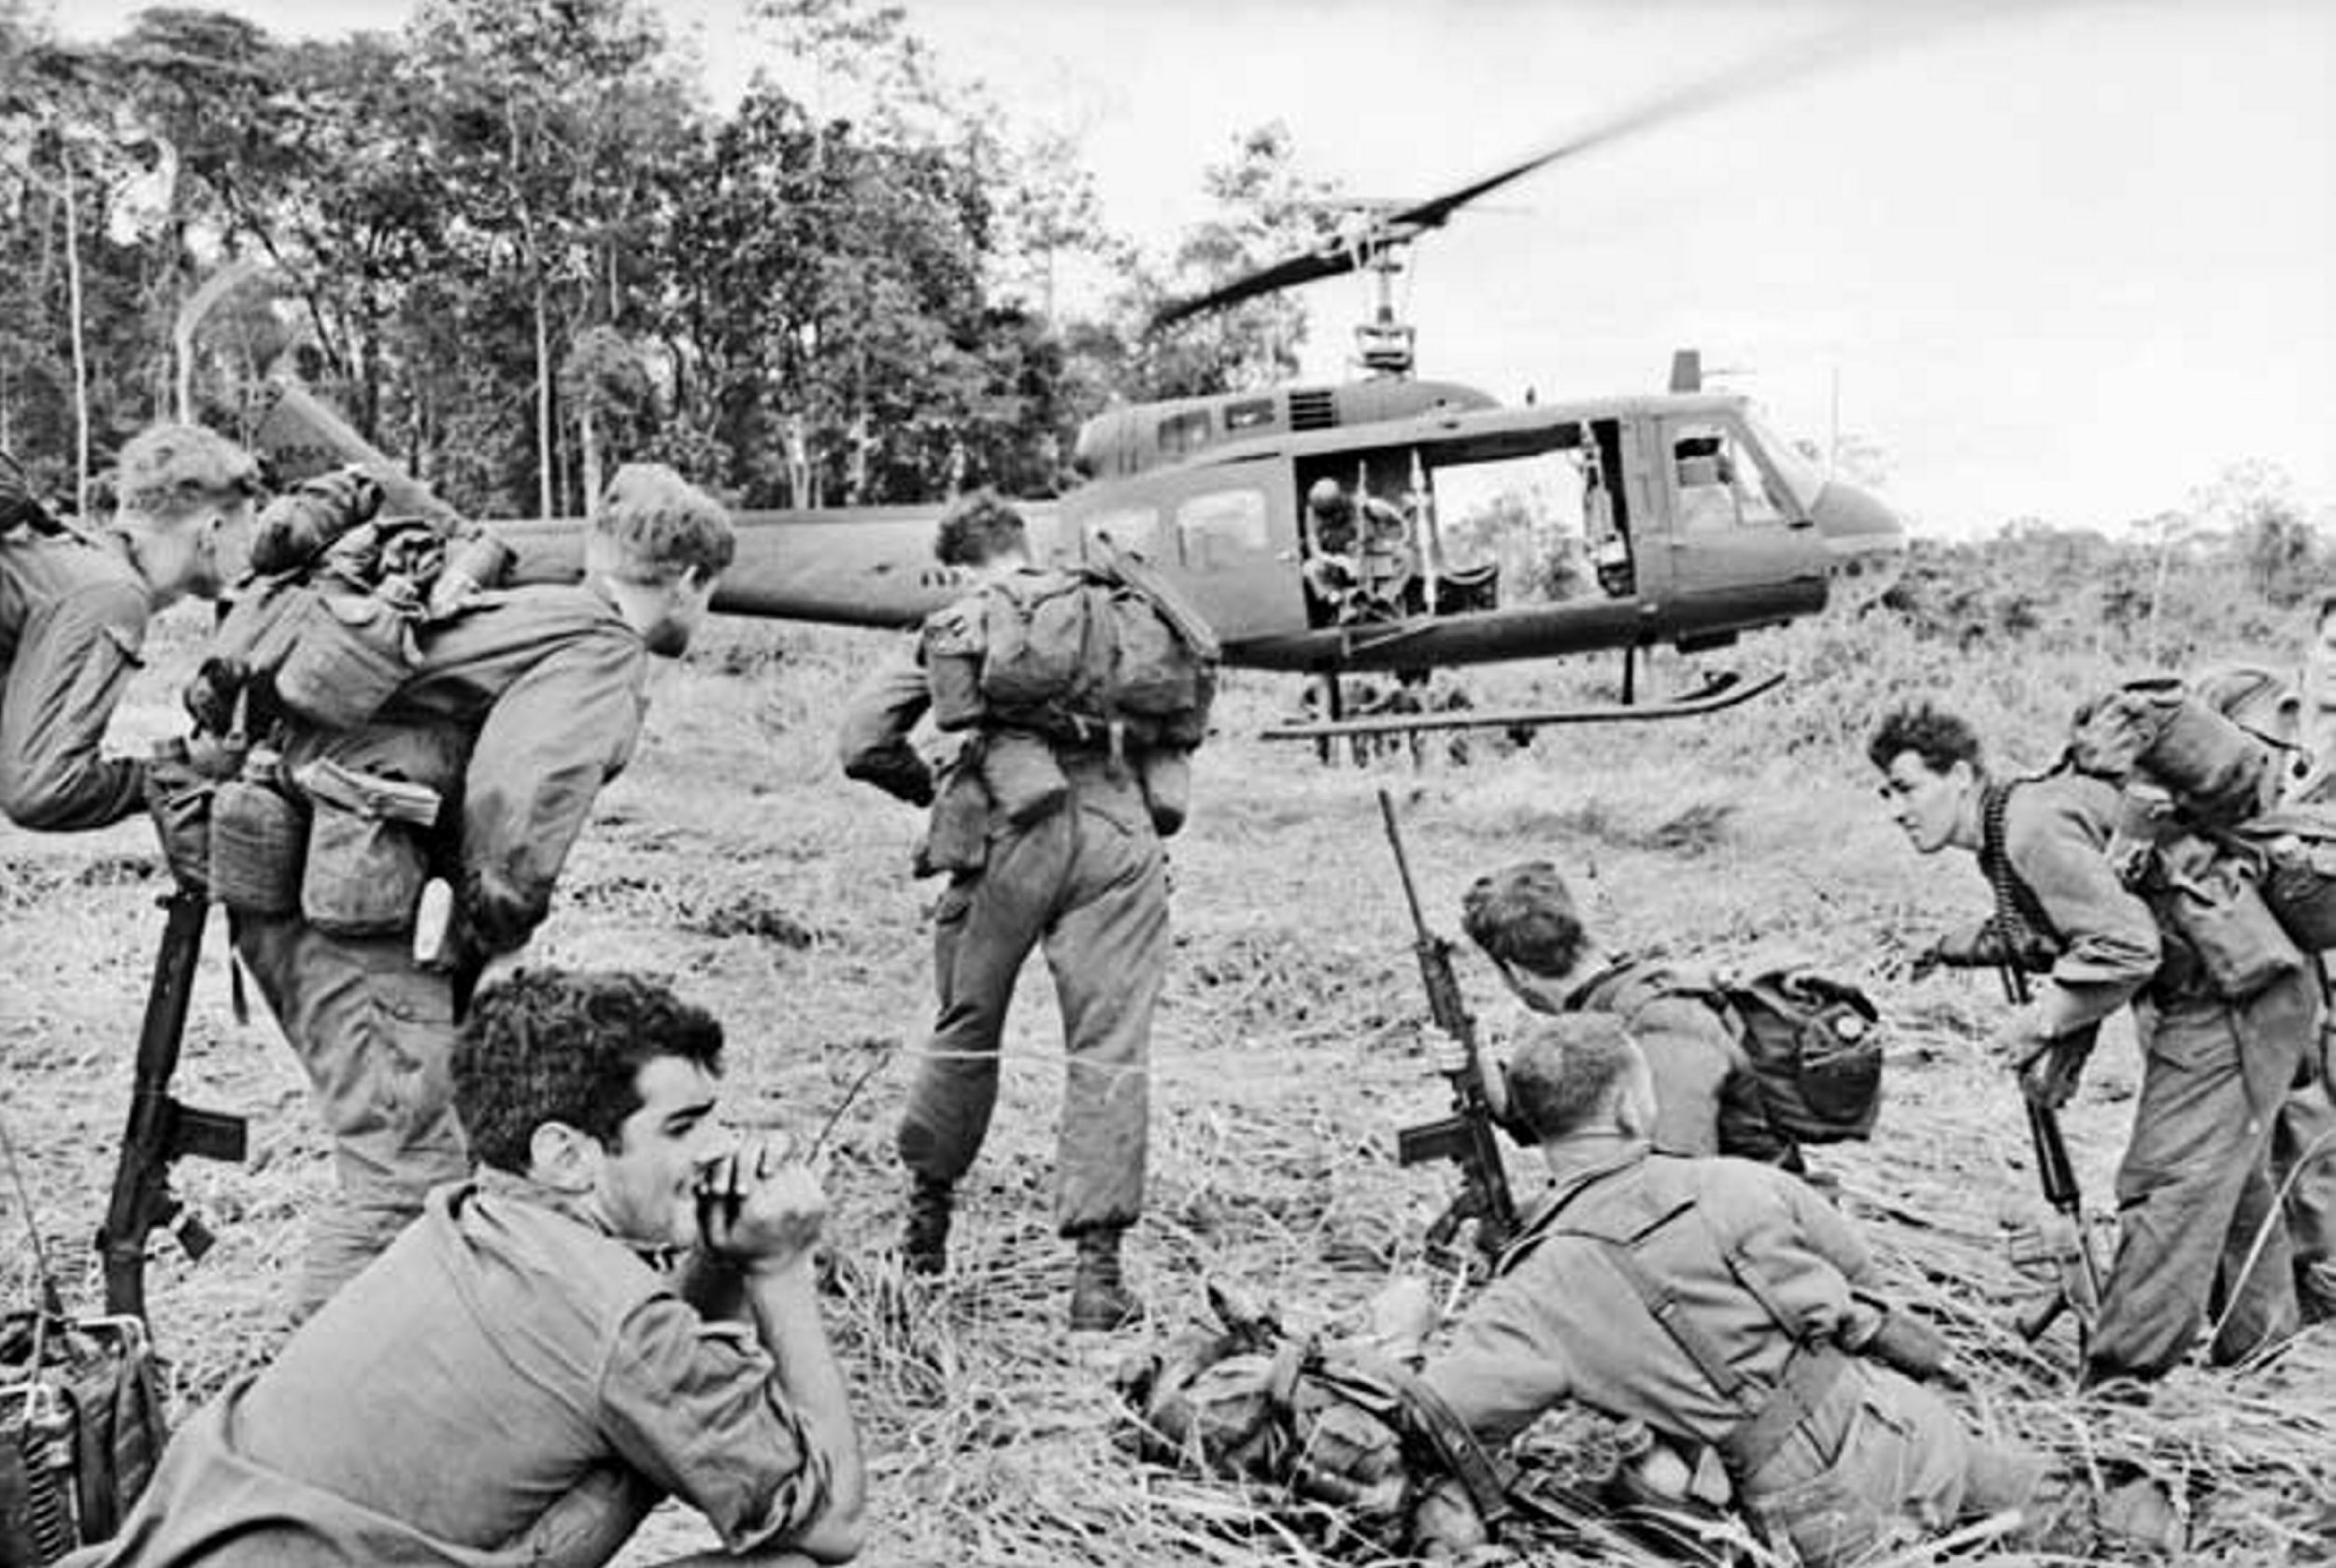 Pin On The Nam